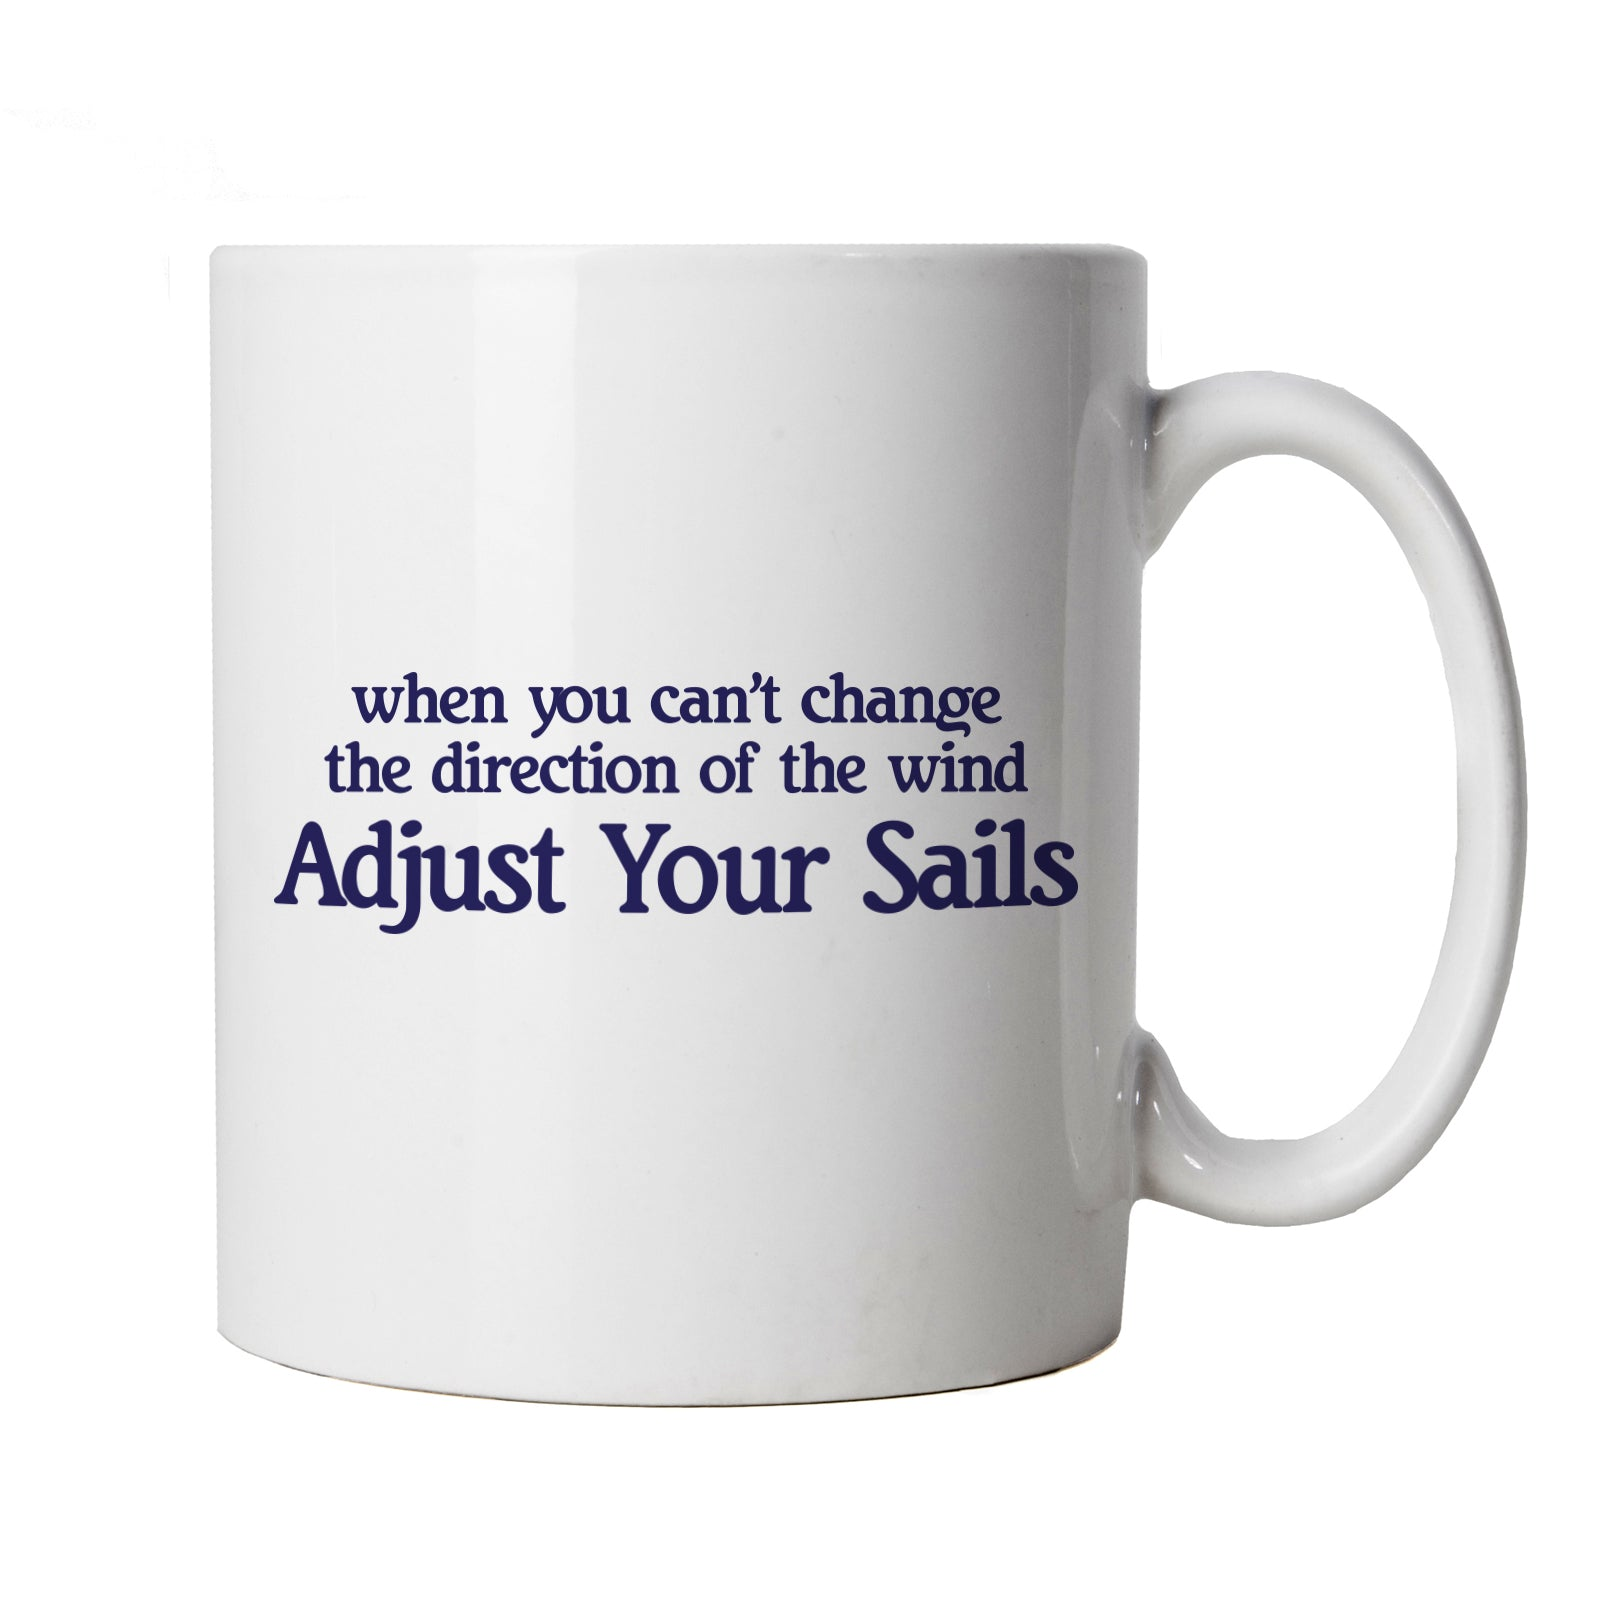 Adjust Your Sails Sailing Mug | Sailing Yacht Tug Lifeboat Fishing Catamaran Ferry | Swimming Surfing Windsurfing Scuba Snorkel Diving | Hobbies Cup Gift